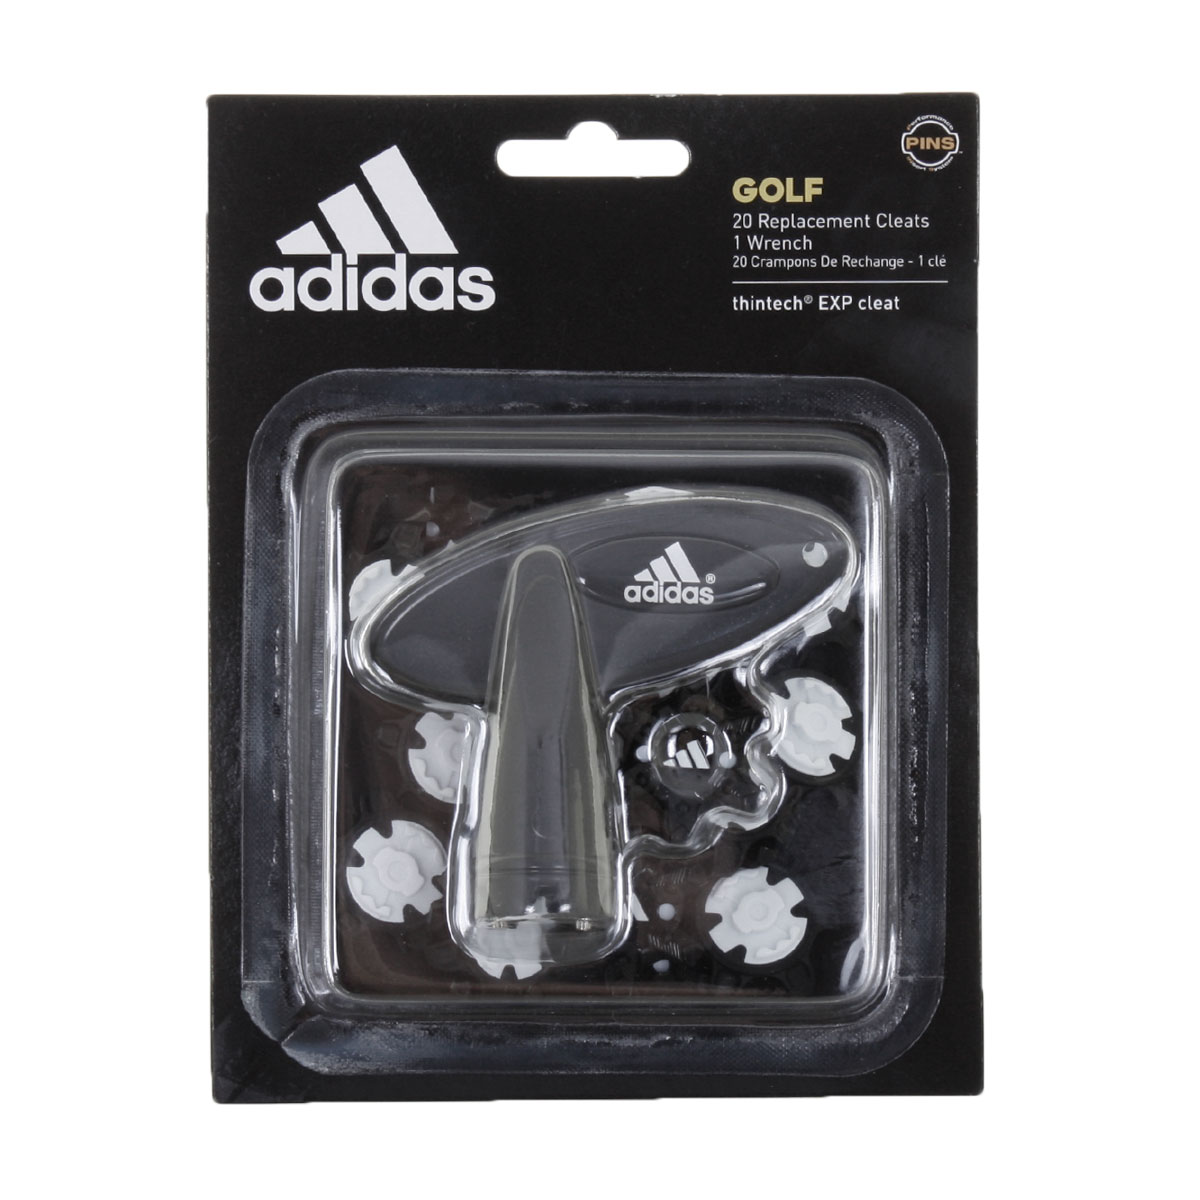 91b2734f06c 2017 Adidas Golf Thintech Exp Cleat 20 Pins Pack Golf Shoe Spikes ...